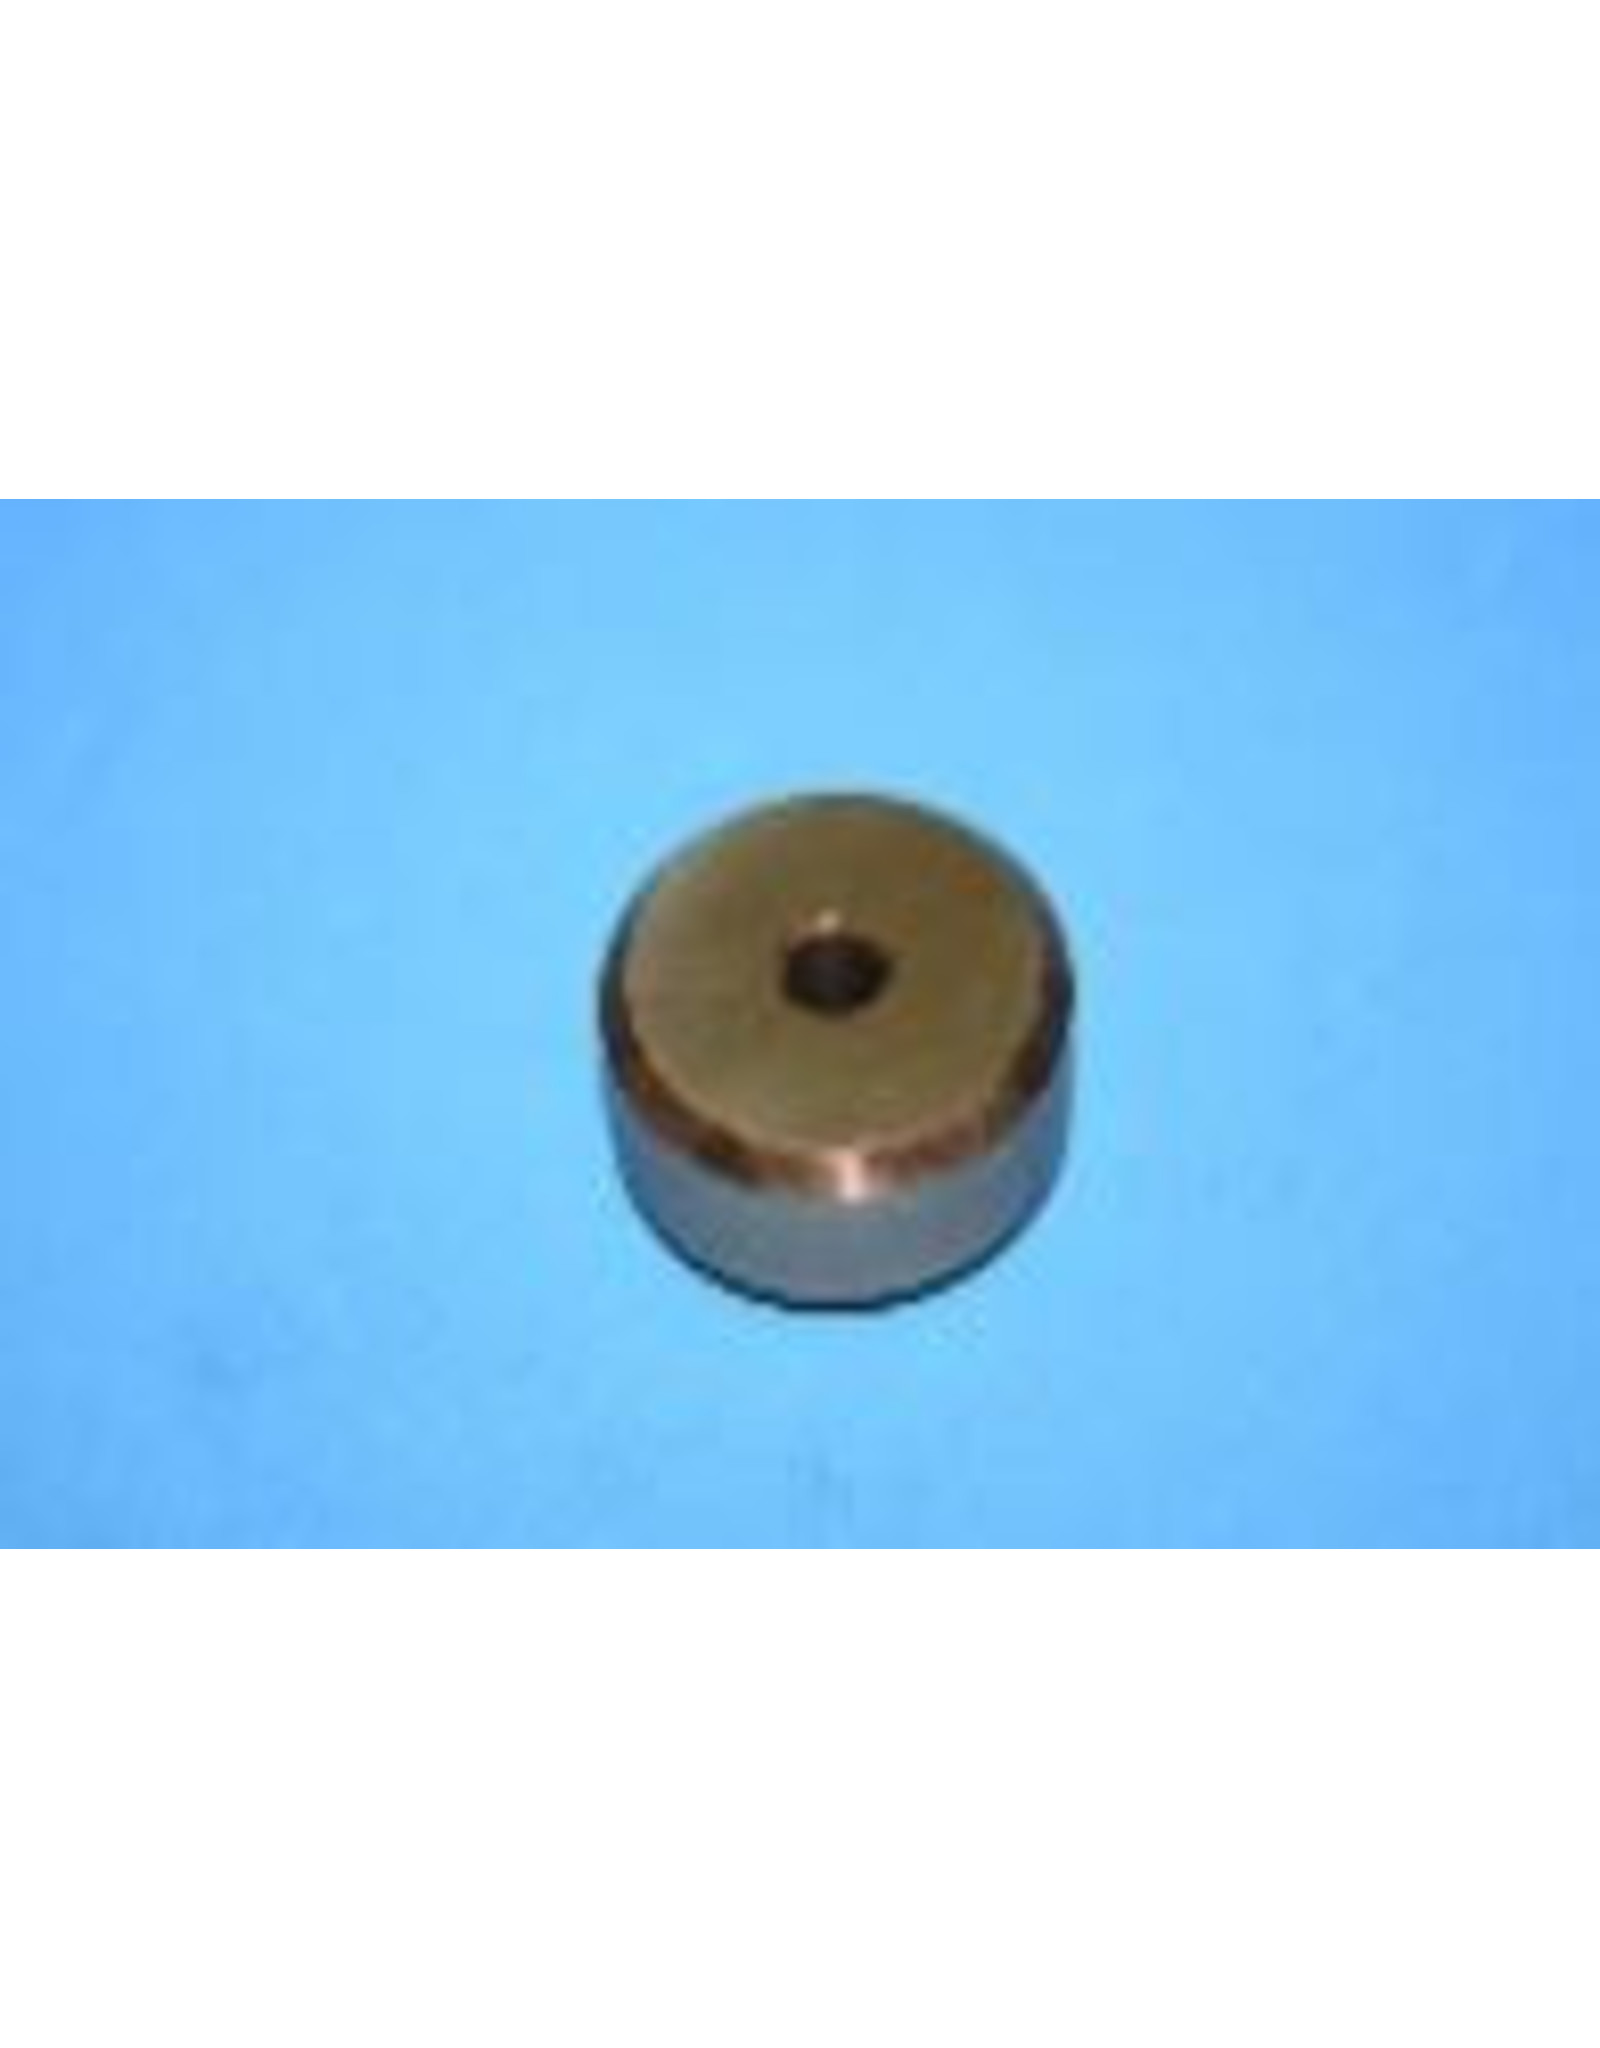 KMT Style Outlet Seat, Check Valve, SL5, 100S